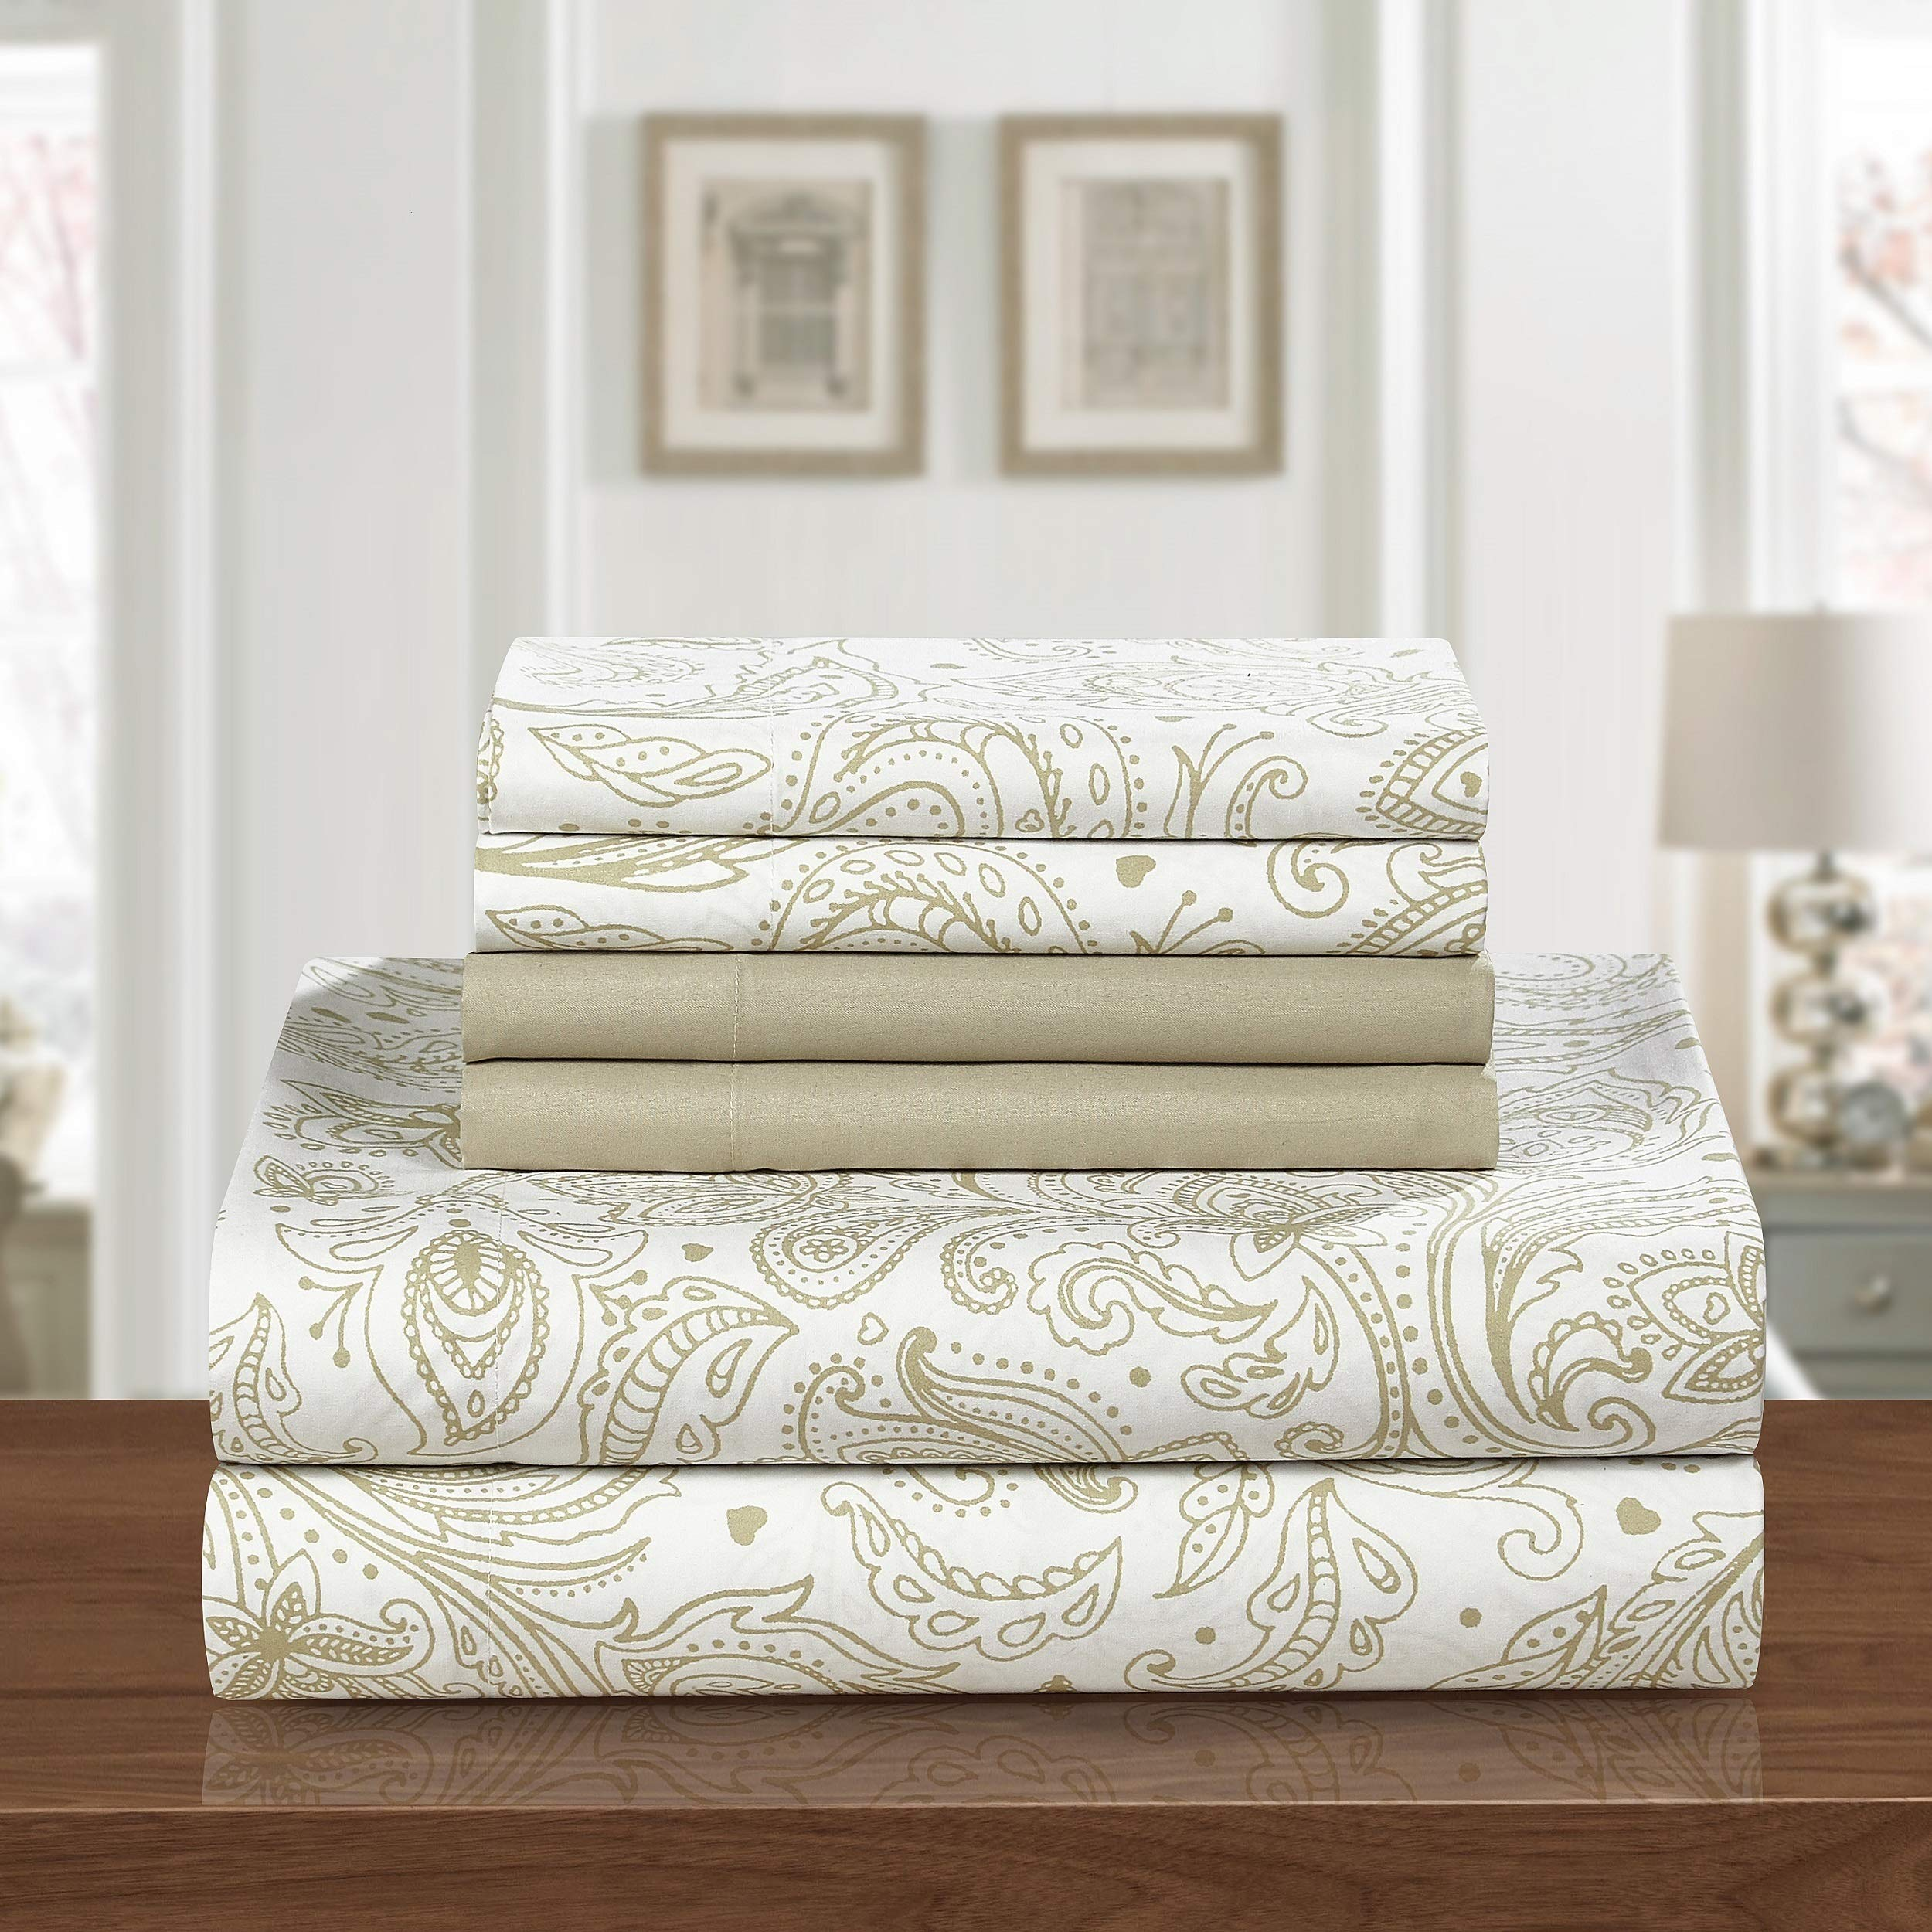 PH 4 Piece Twin Beige Brown Printed Sheet Set, Country & Vintage Style, Microfiber Material, Paisley Pattern Deep Pockets, Fully Elasticized Fitted, Machine Wash - Floral Print